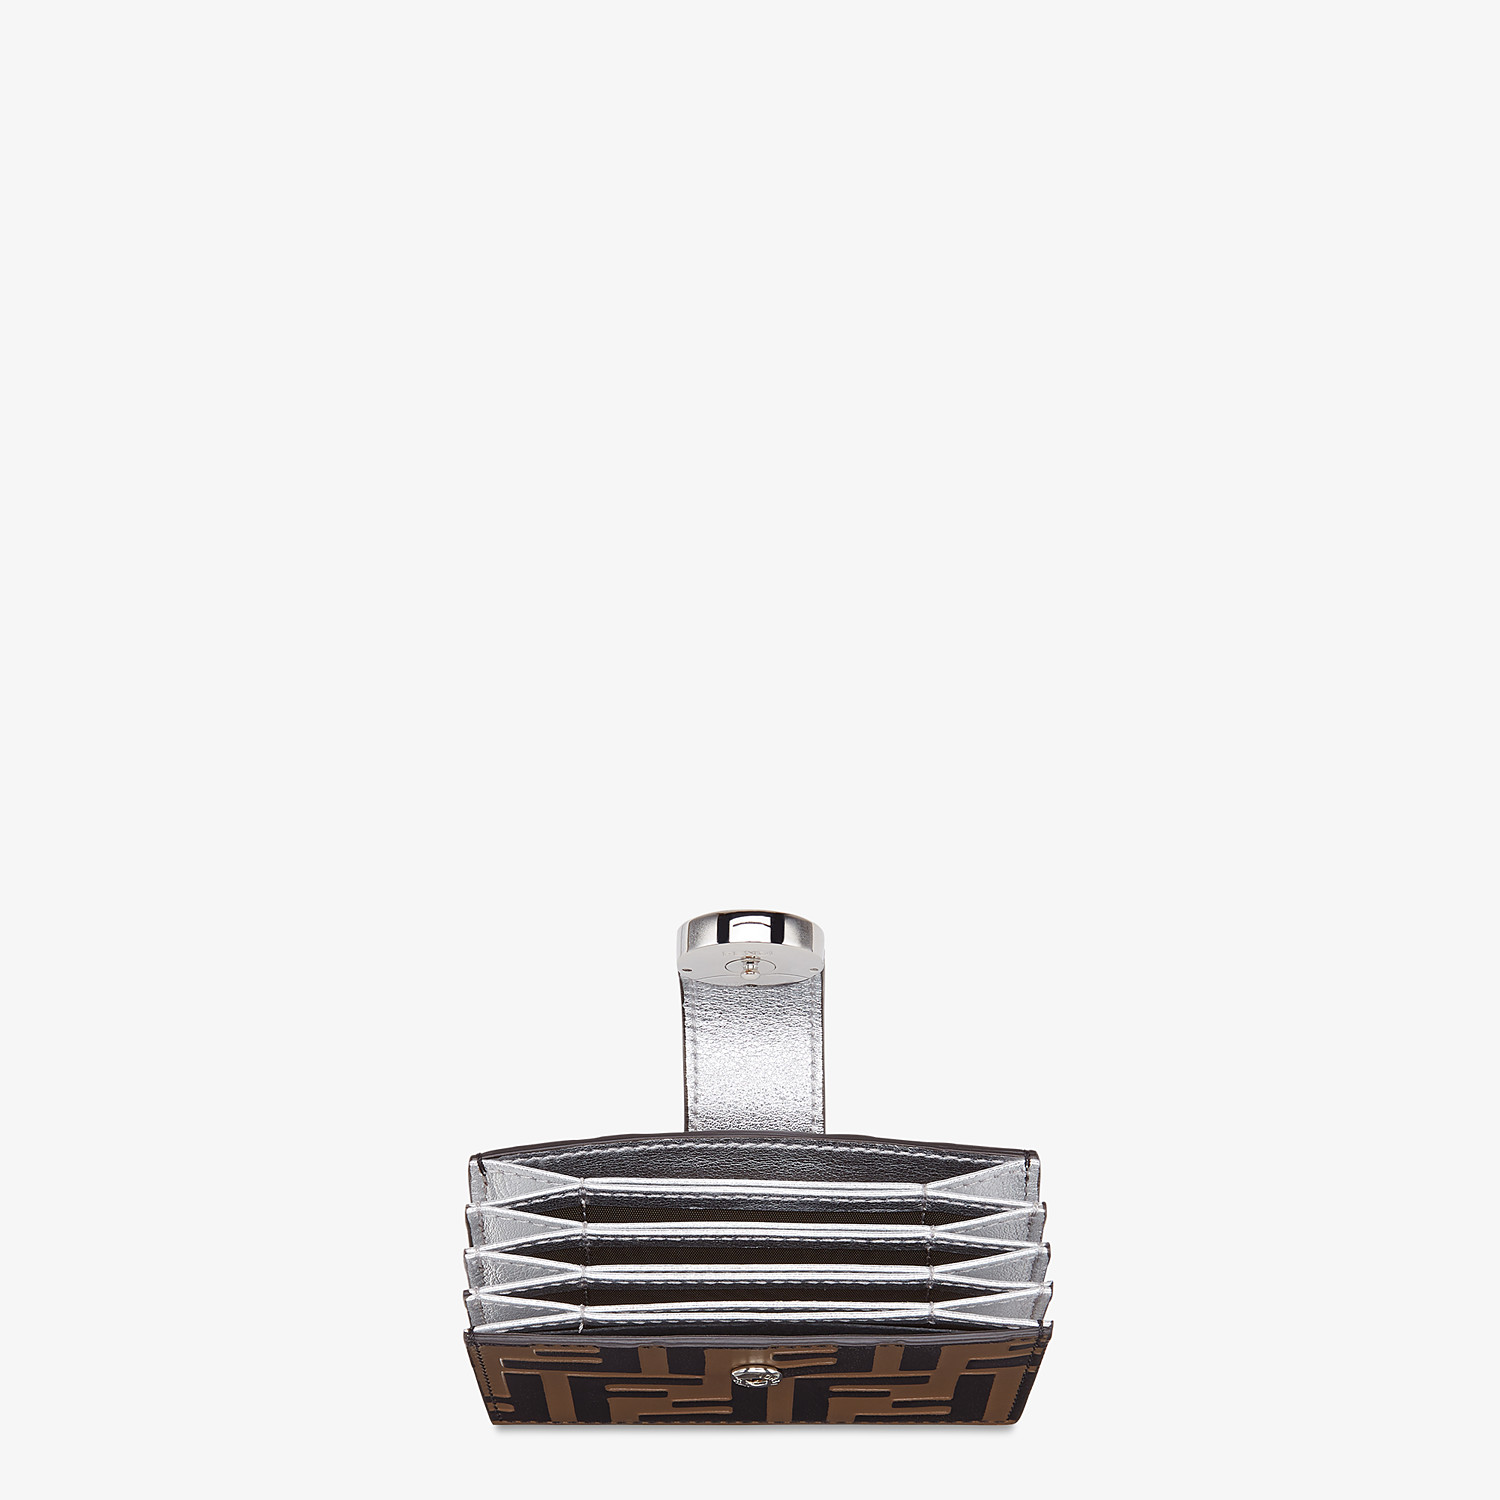 FENDI CARD HOLDER - Silver leather gusseted card holder - view 3 detail